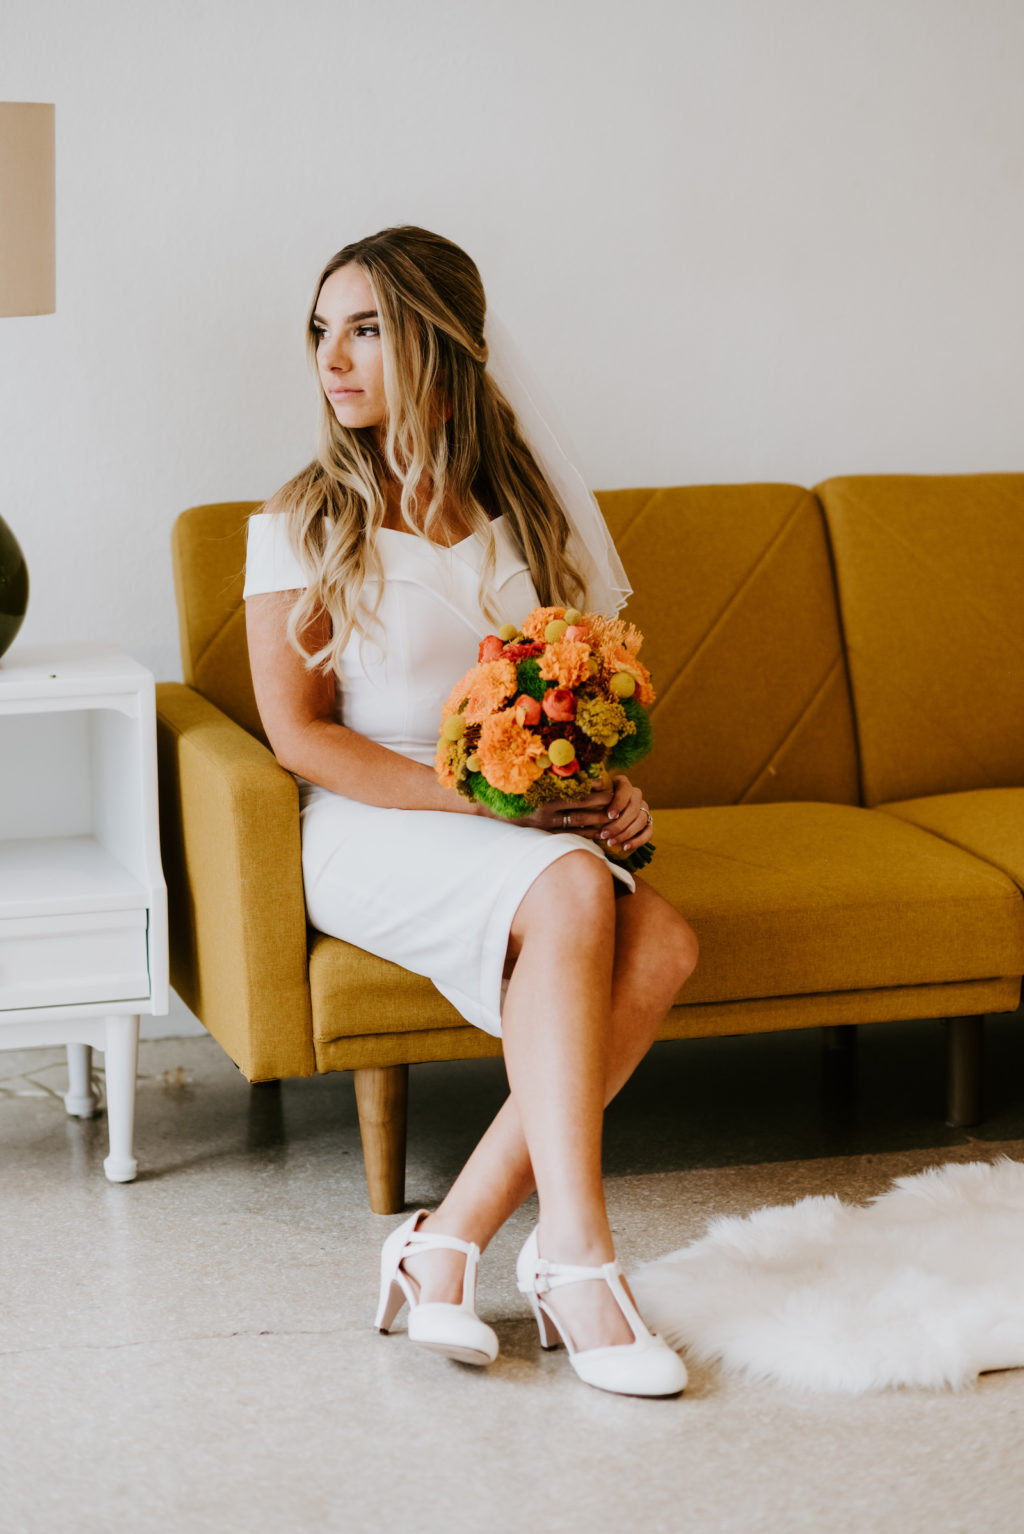 Retro Mid Century Modern Bride in Mid Length Off the Shoulder Classic Wedding Dress, White Mary Jane Wedding Shoes, Holding Colorful Orange, Marigold, Yellow, Greenery Floral Bouquet